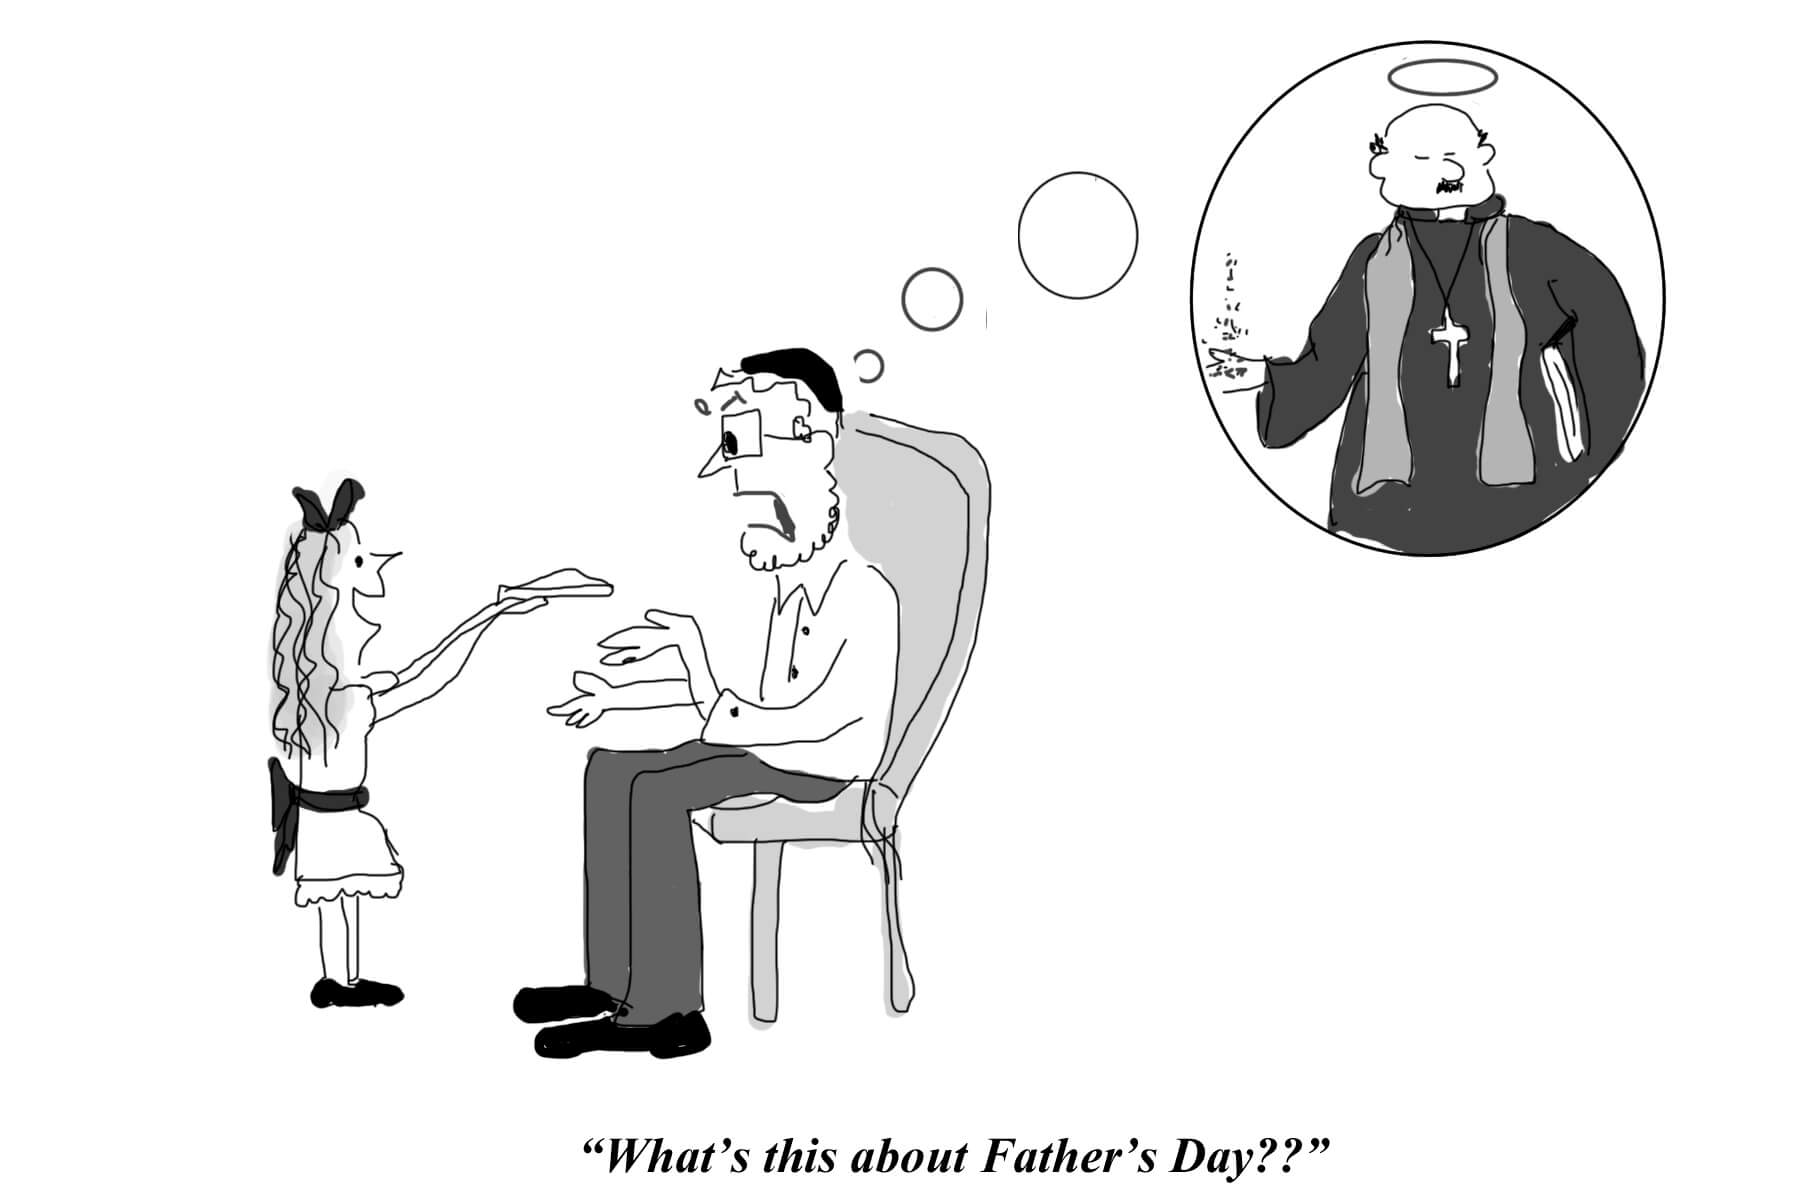 A girl is wishing her father a happy father's day while he's thinking of catholic priests